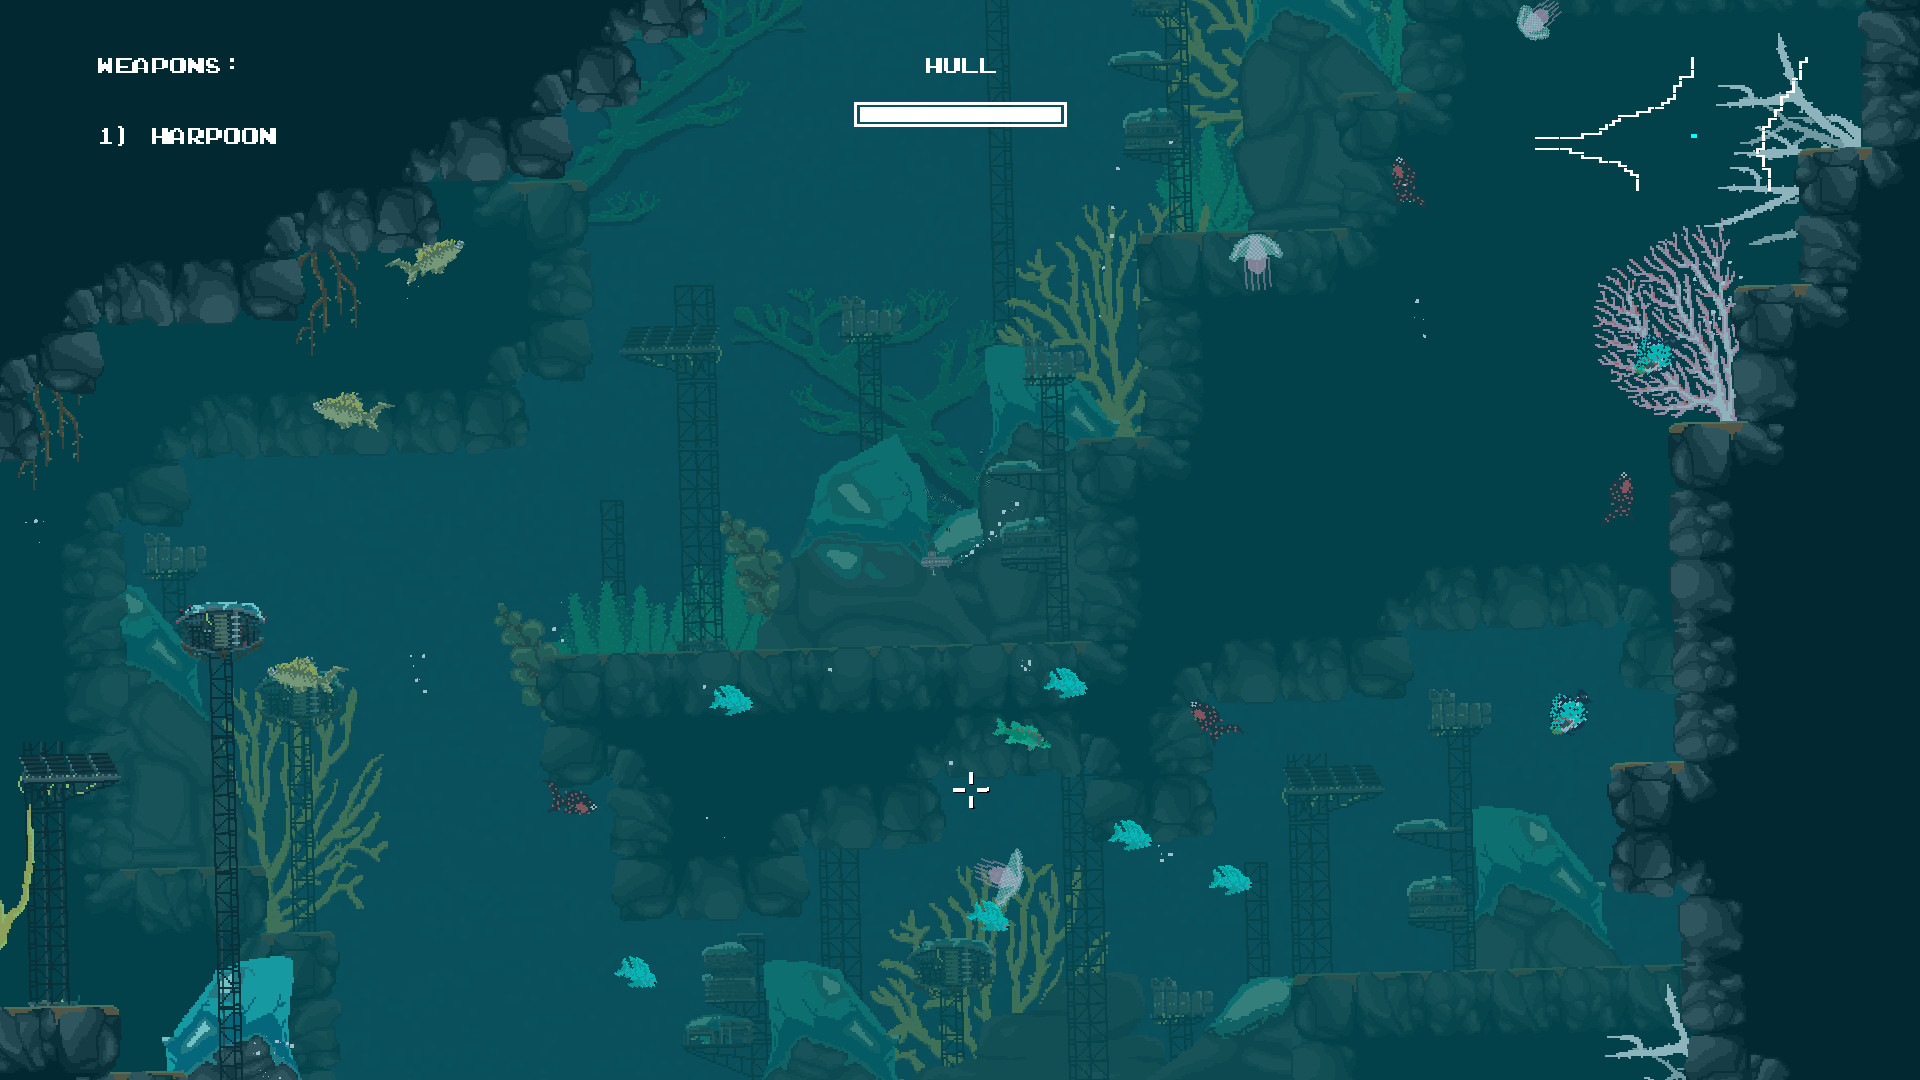 The Aquatic Adventure of the Last Human screenshot 2